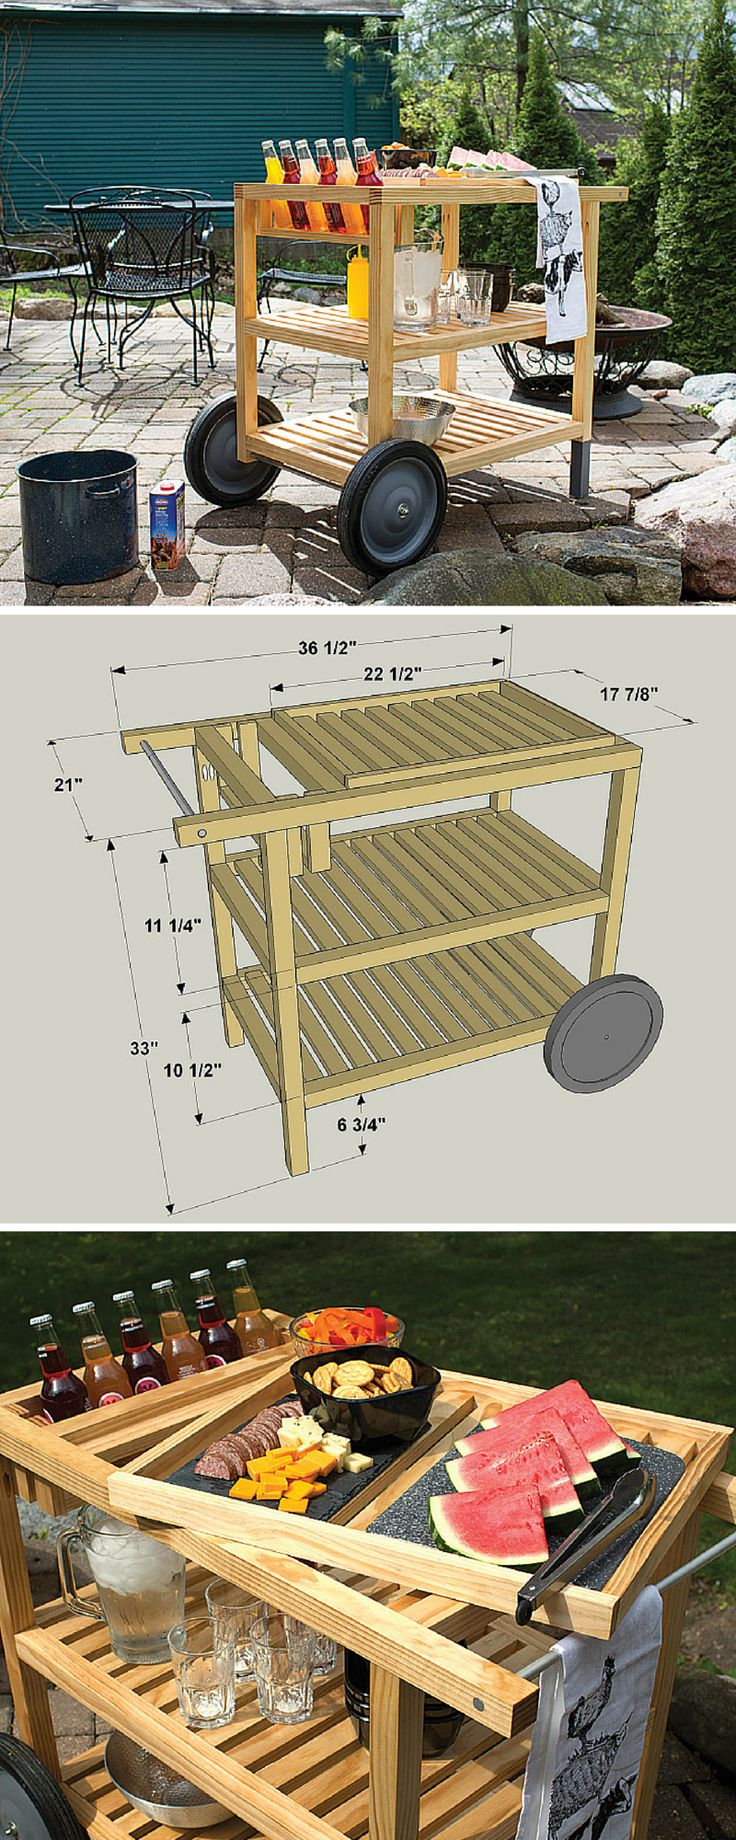 "Make outdoor entertaining easy with this serving cart. It offers lots of space for storing food, tableware, and outdoor supplies, plus it cradles bottles where they're easy to reach but protected from spills. The top ""shelf"" is a lift-off tray, so you can carry supplies from the cart to your table. Get the free DIY plans at buildsomething.com"